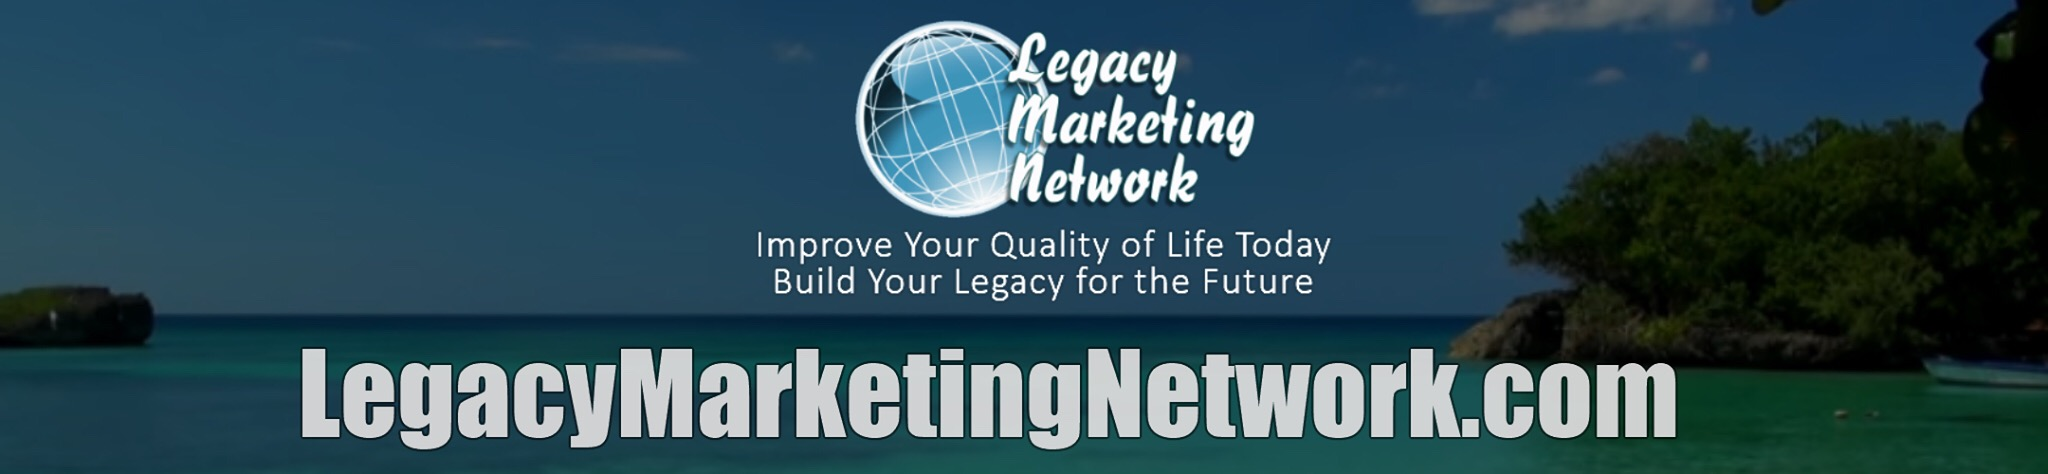 Legacy Marketing Network